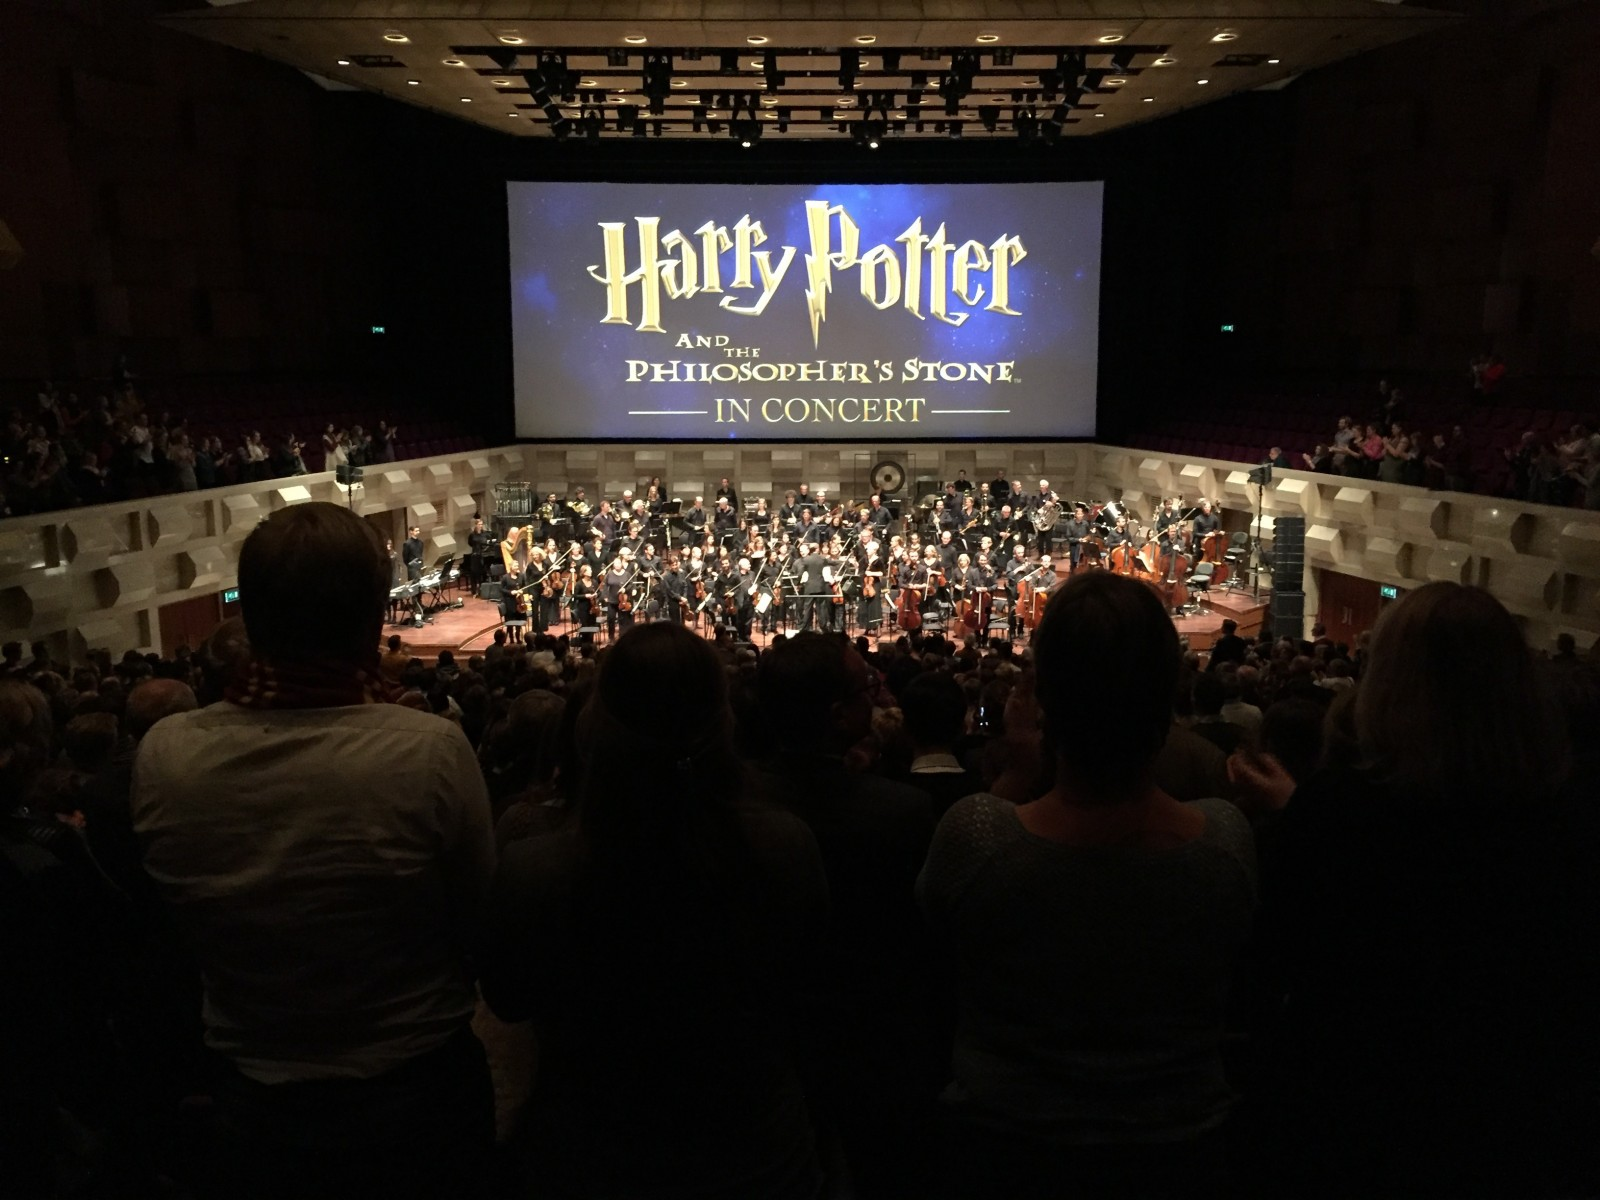 Harry Potter Live in concert